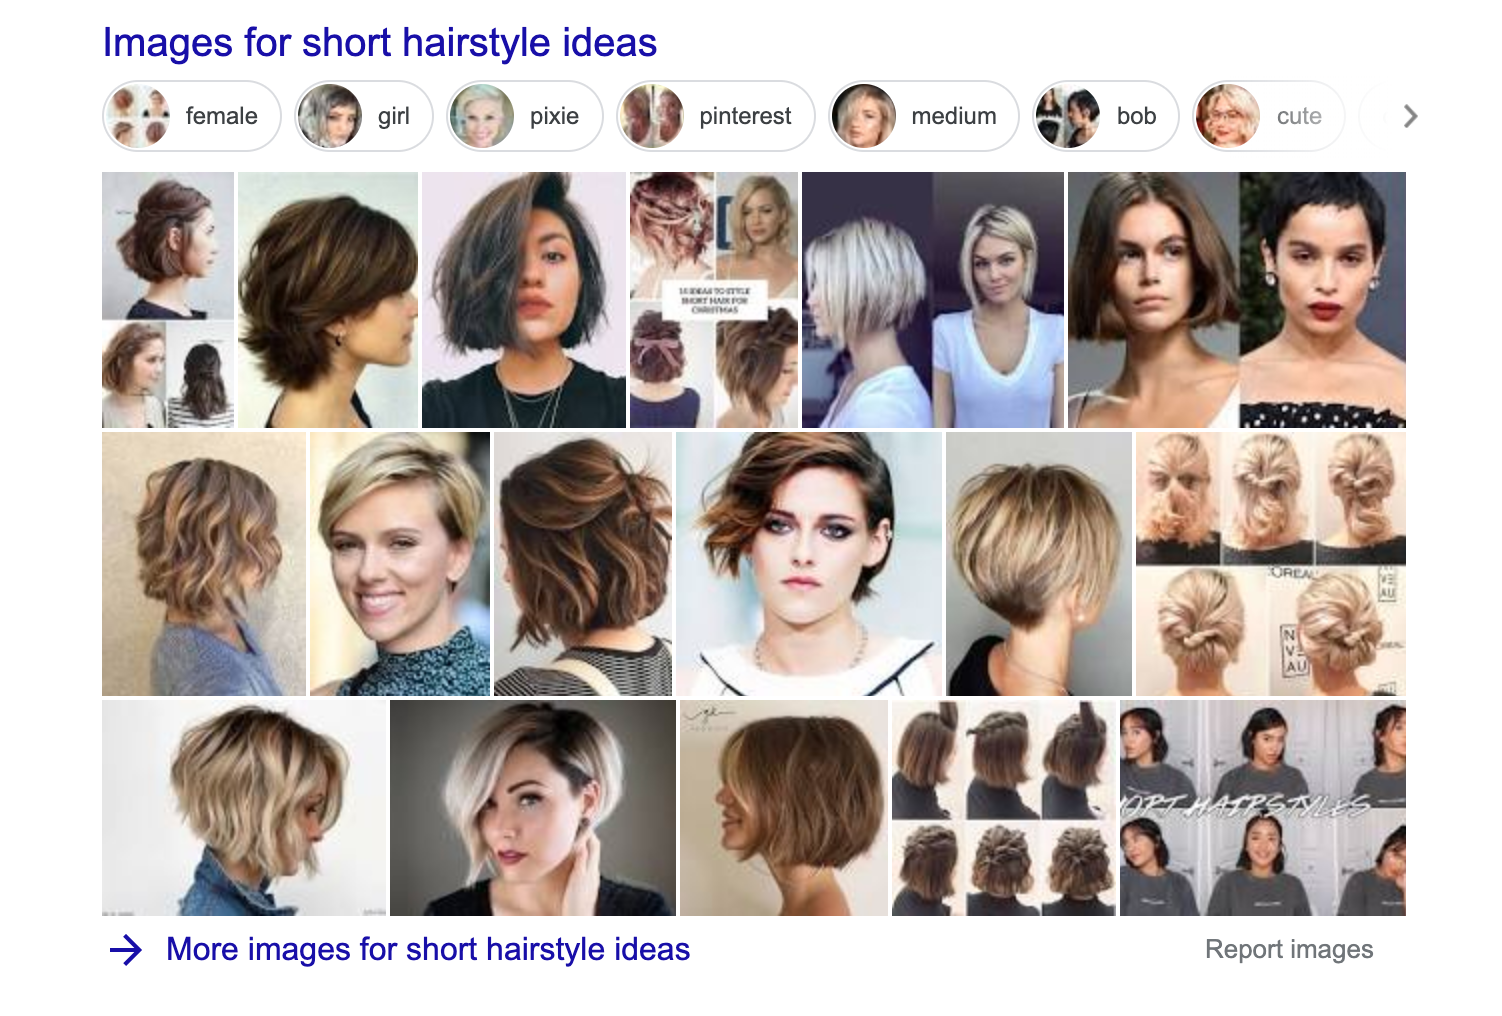 """picture carousel in SERP for """"short hairstyle ideas query"""""""